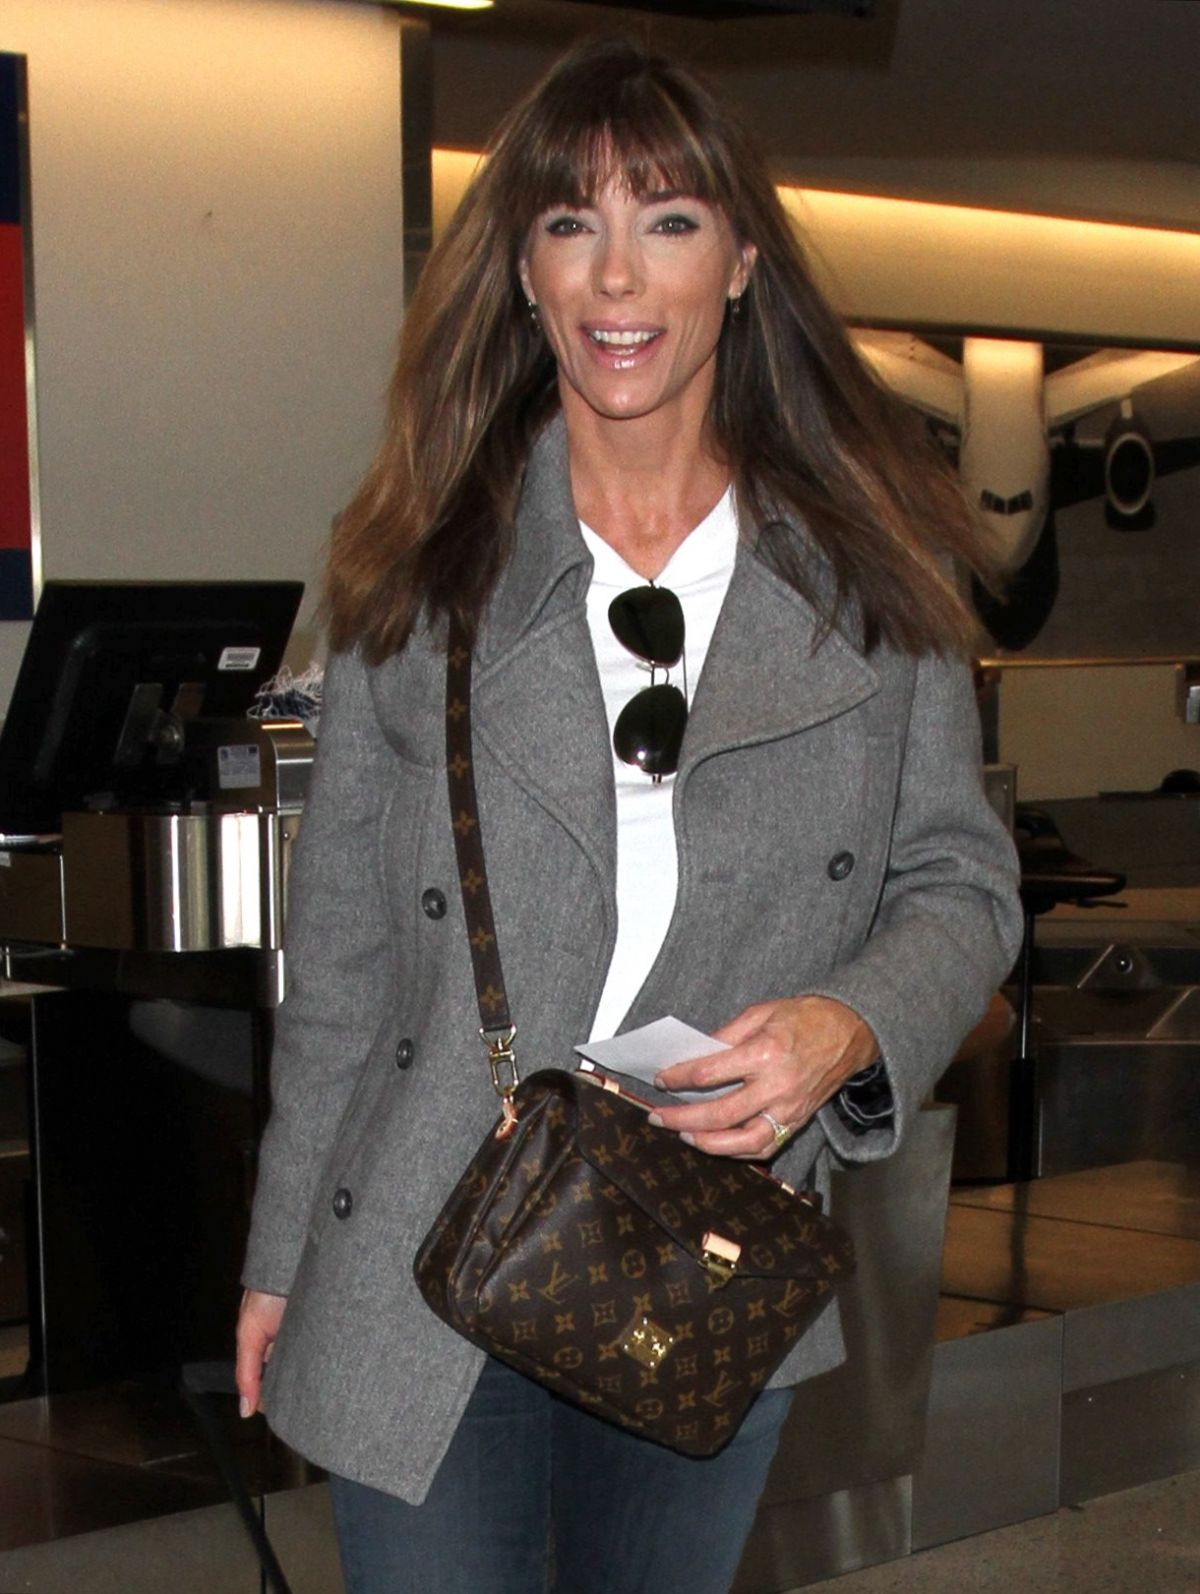 JENNIFER FLAVIN at LAX Airport in Los Angeles 01/14/2016